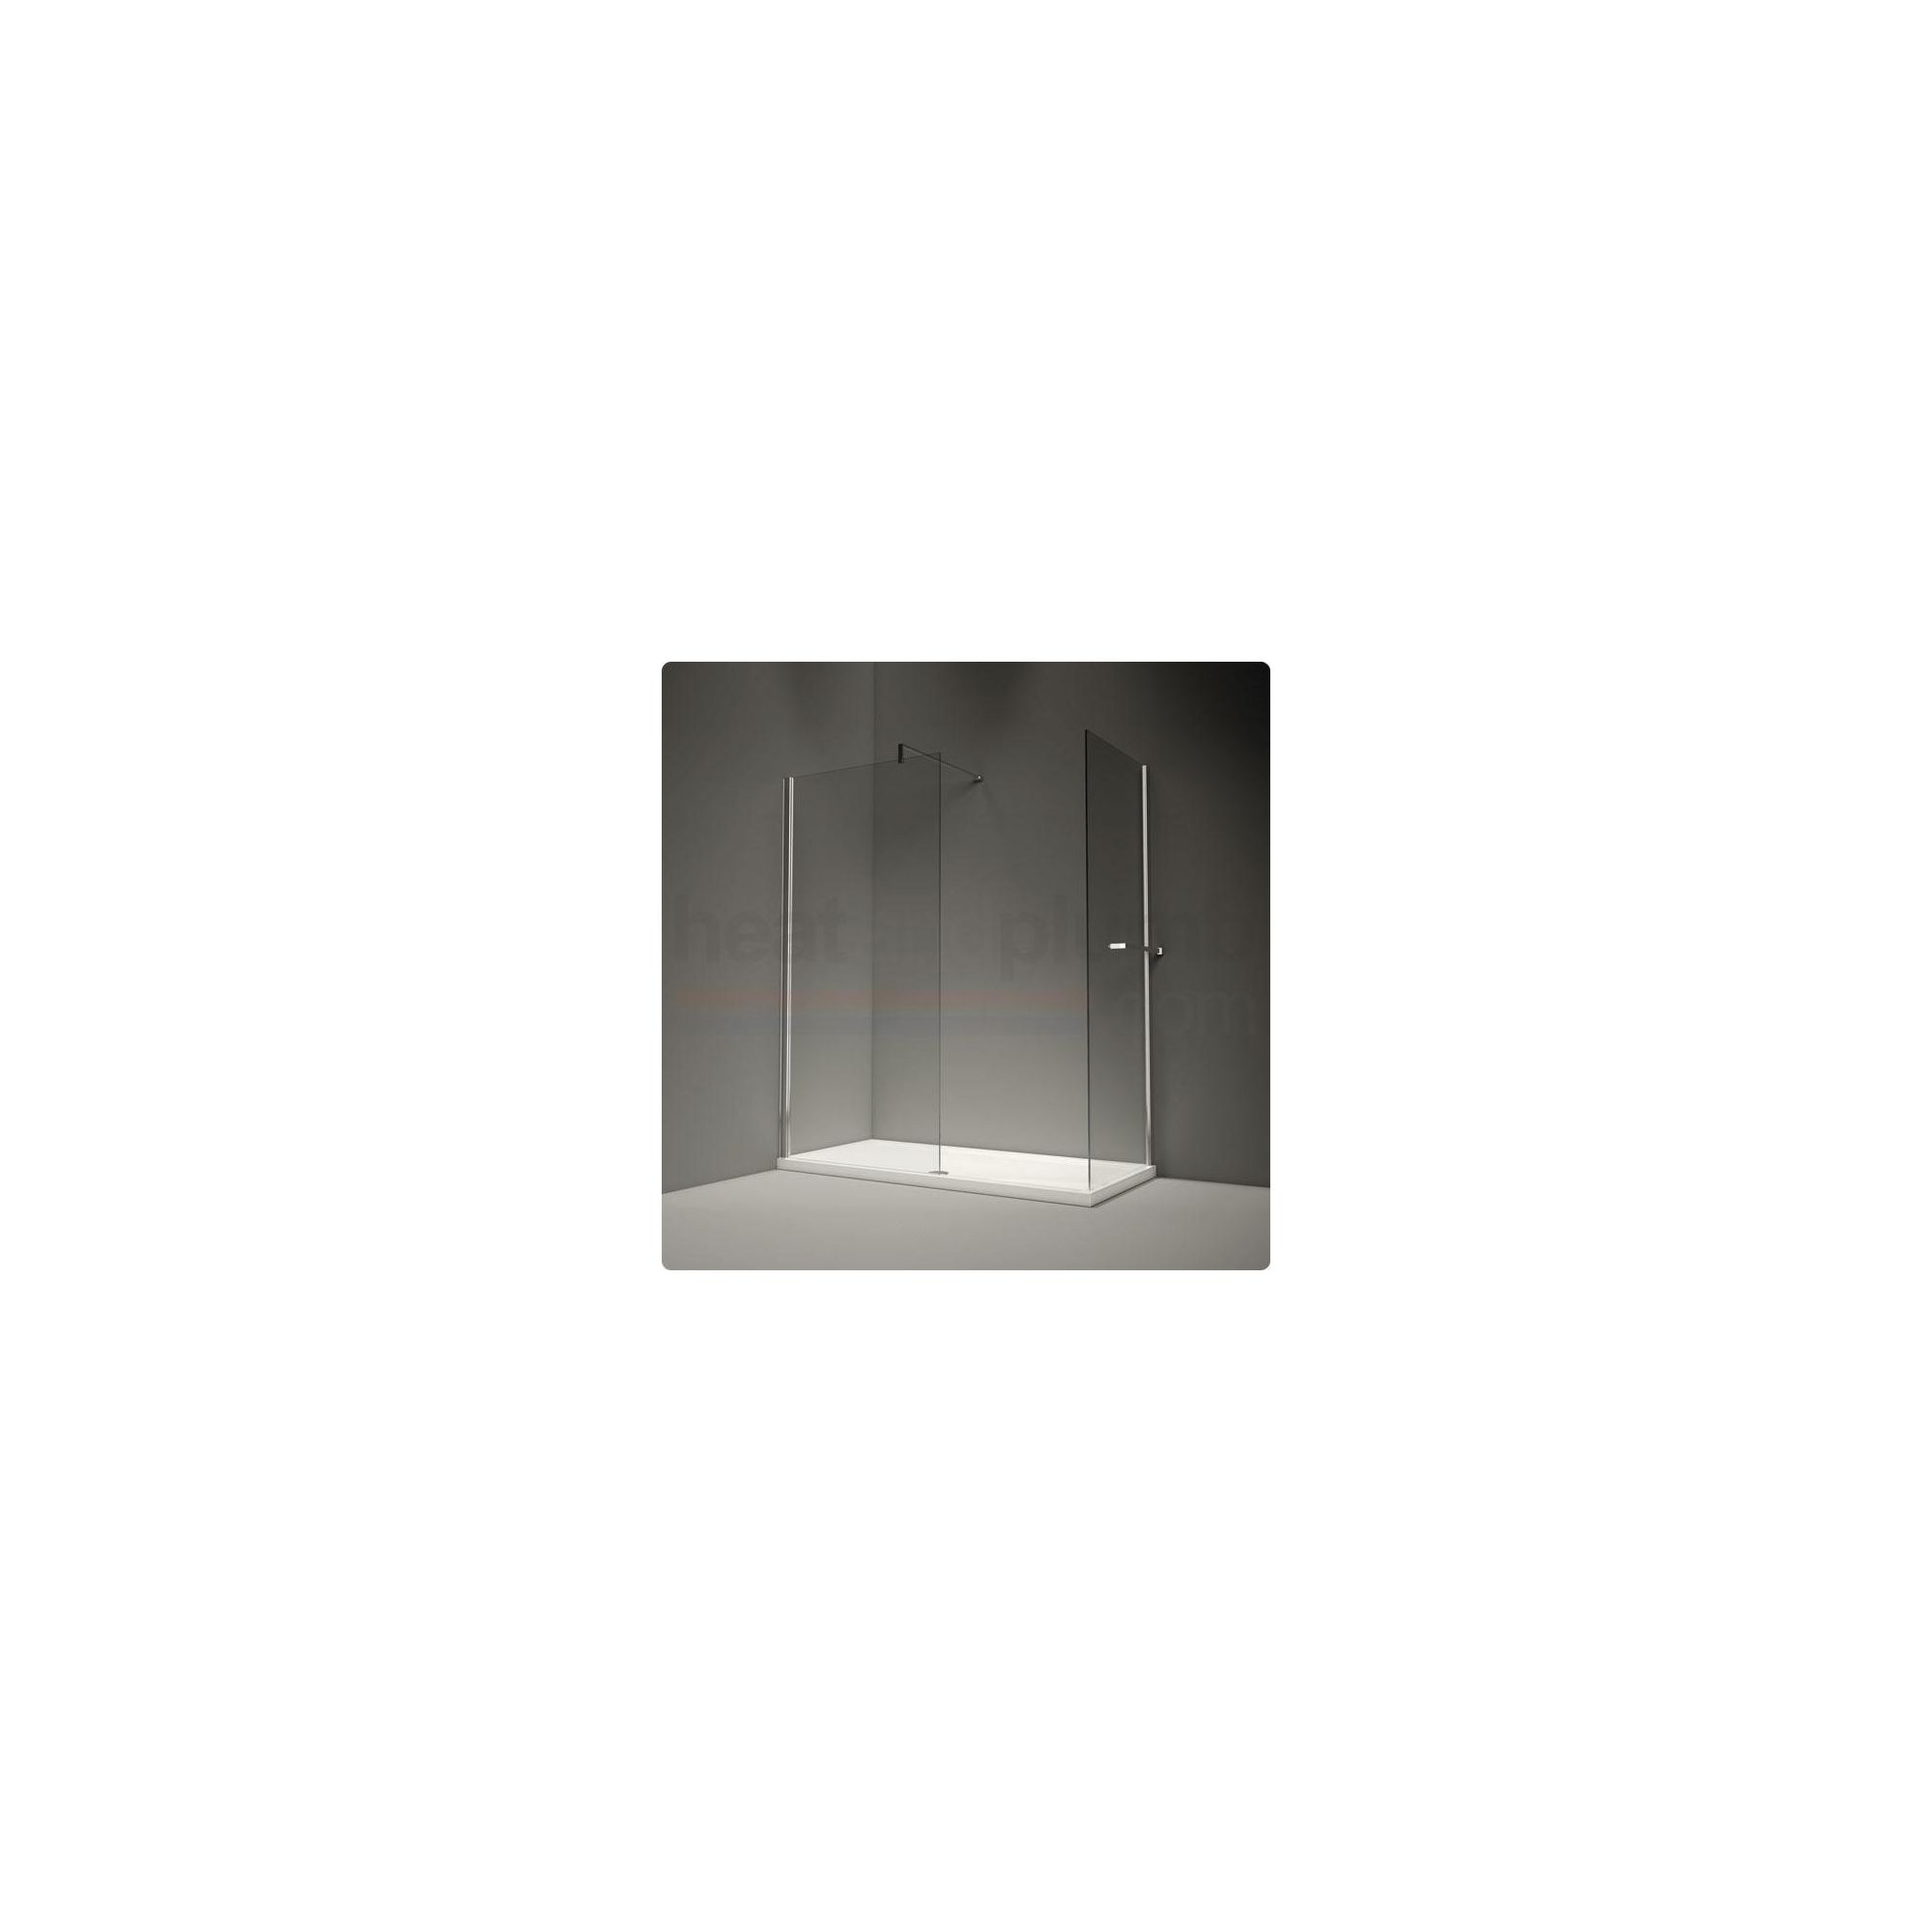 Merlyn Series 6 Straight Glass Walk-In Shower Enclosure, 1600mm x 800mm, Low Profile Tray, 8mm Glass at Tesco Direct